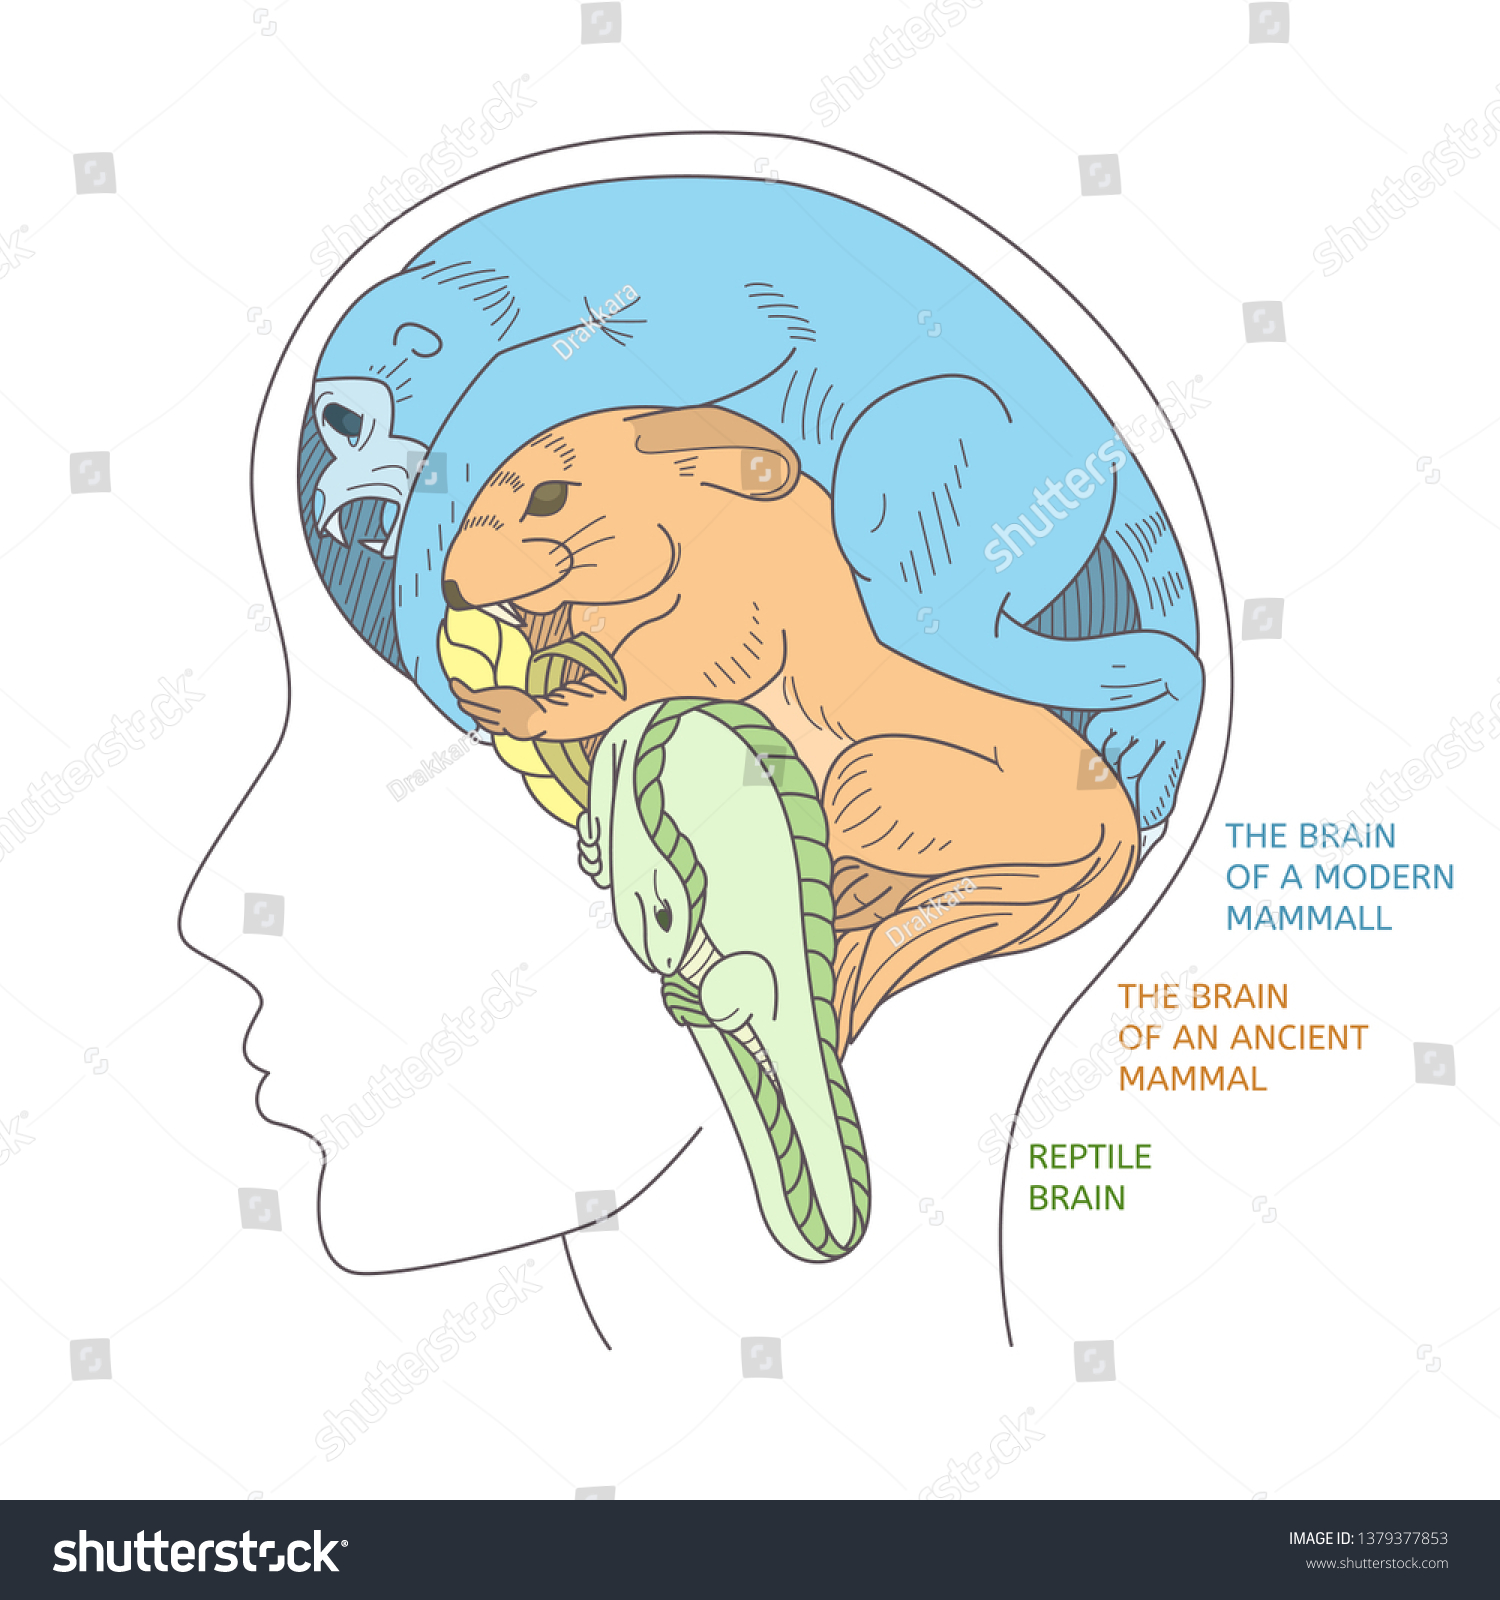 The structure of the human brain as a result of evolution. Visual representation of the brain in the form of animals: reptiles, an ancient mammal and a modern mammal.